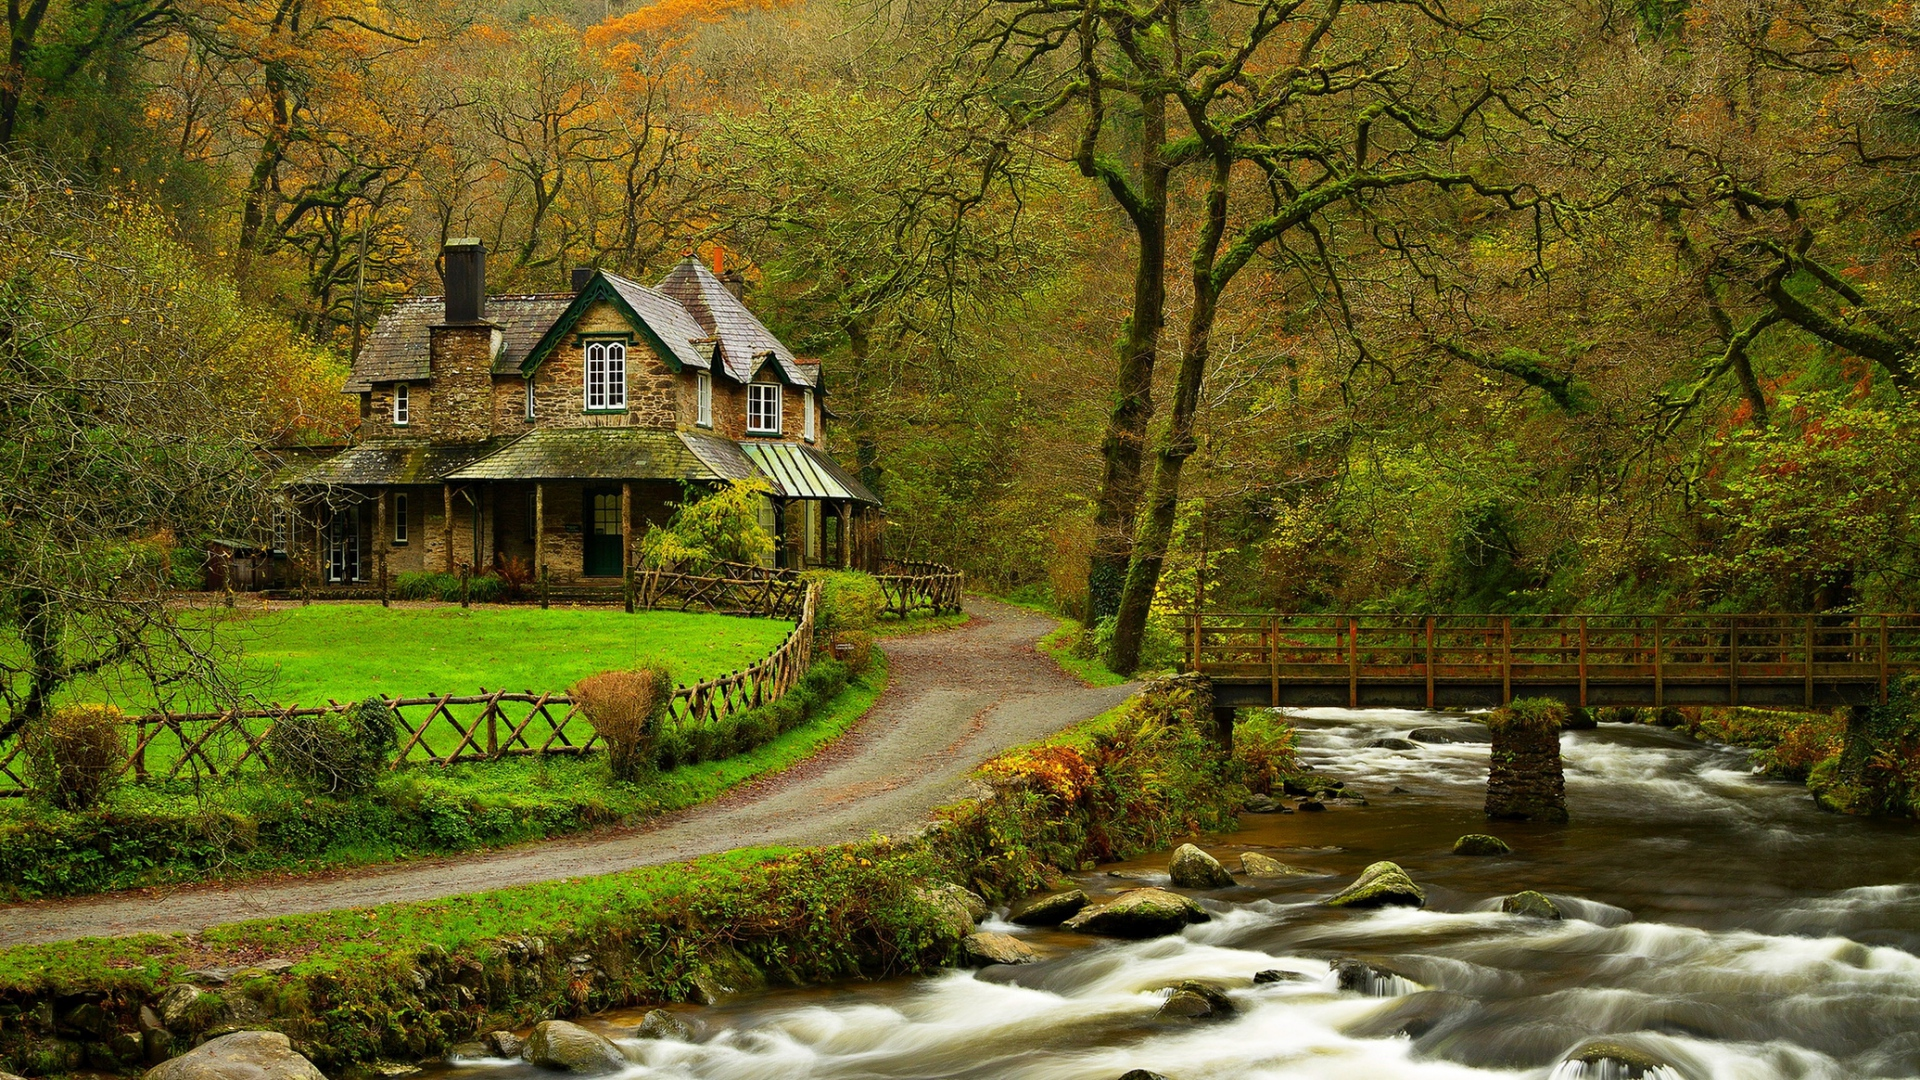 Nature River House - HD Wallpapers - Free Wallpapers - Desktop ...